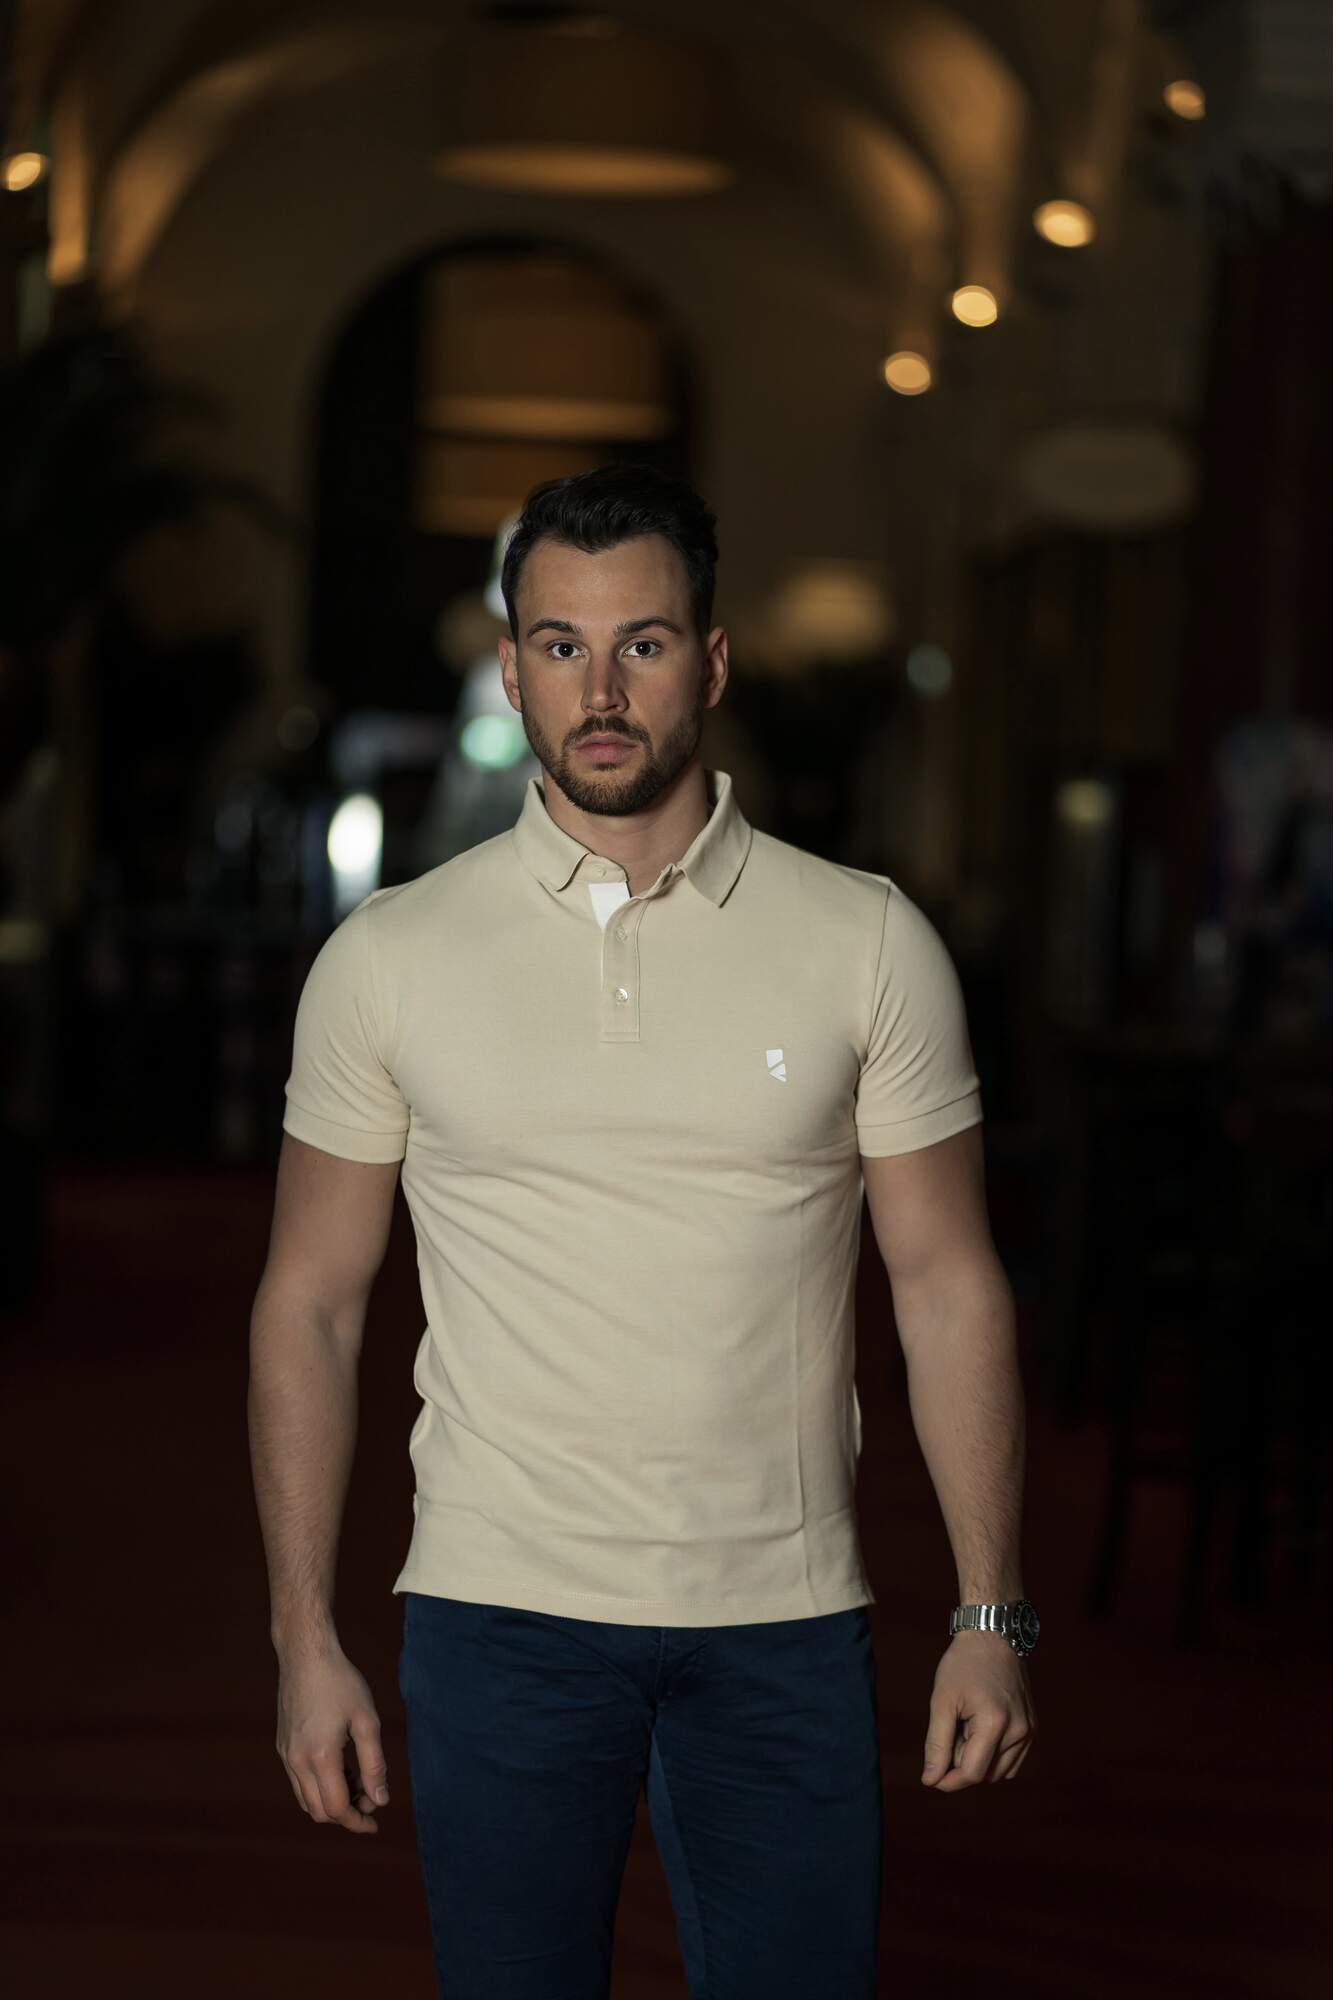 Deloss Premium Polo Collection - Beige